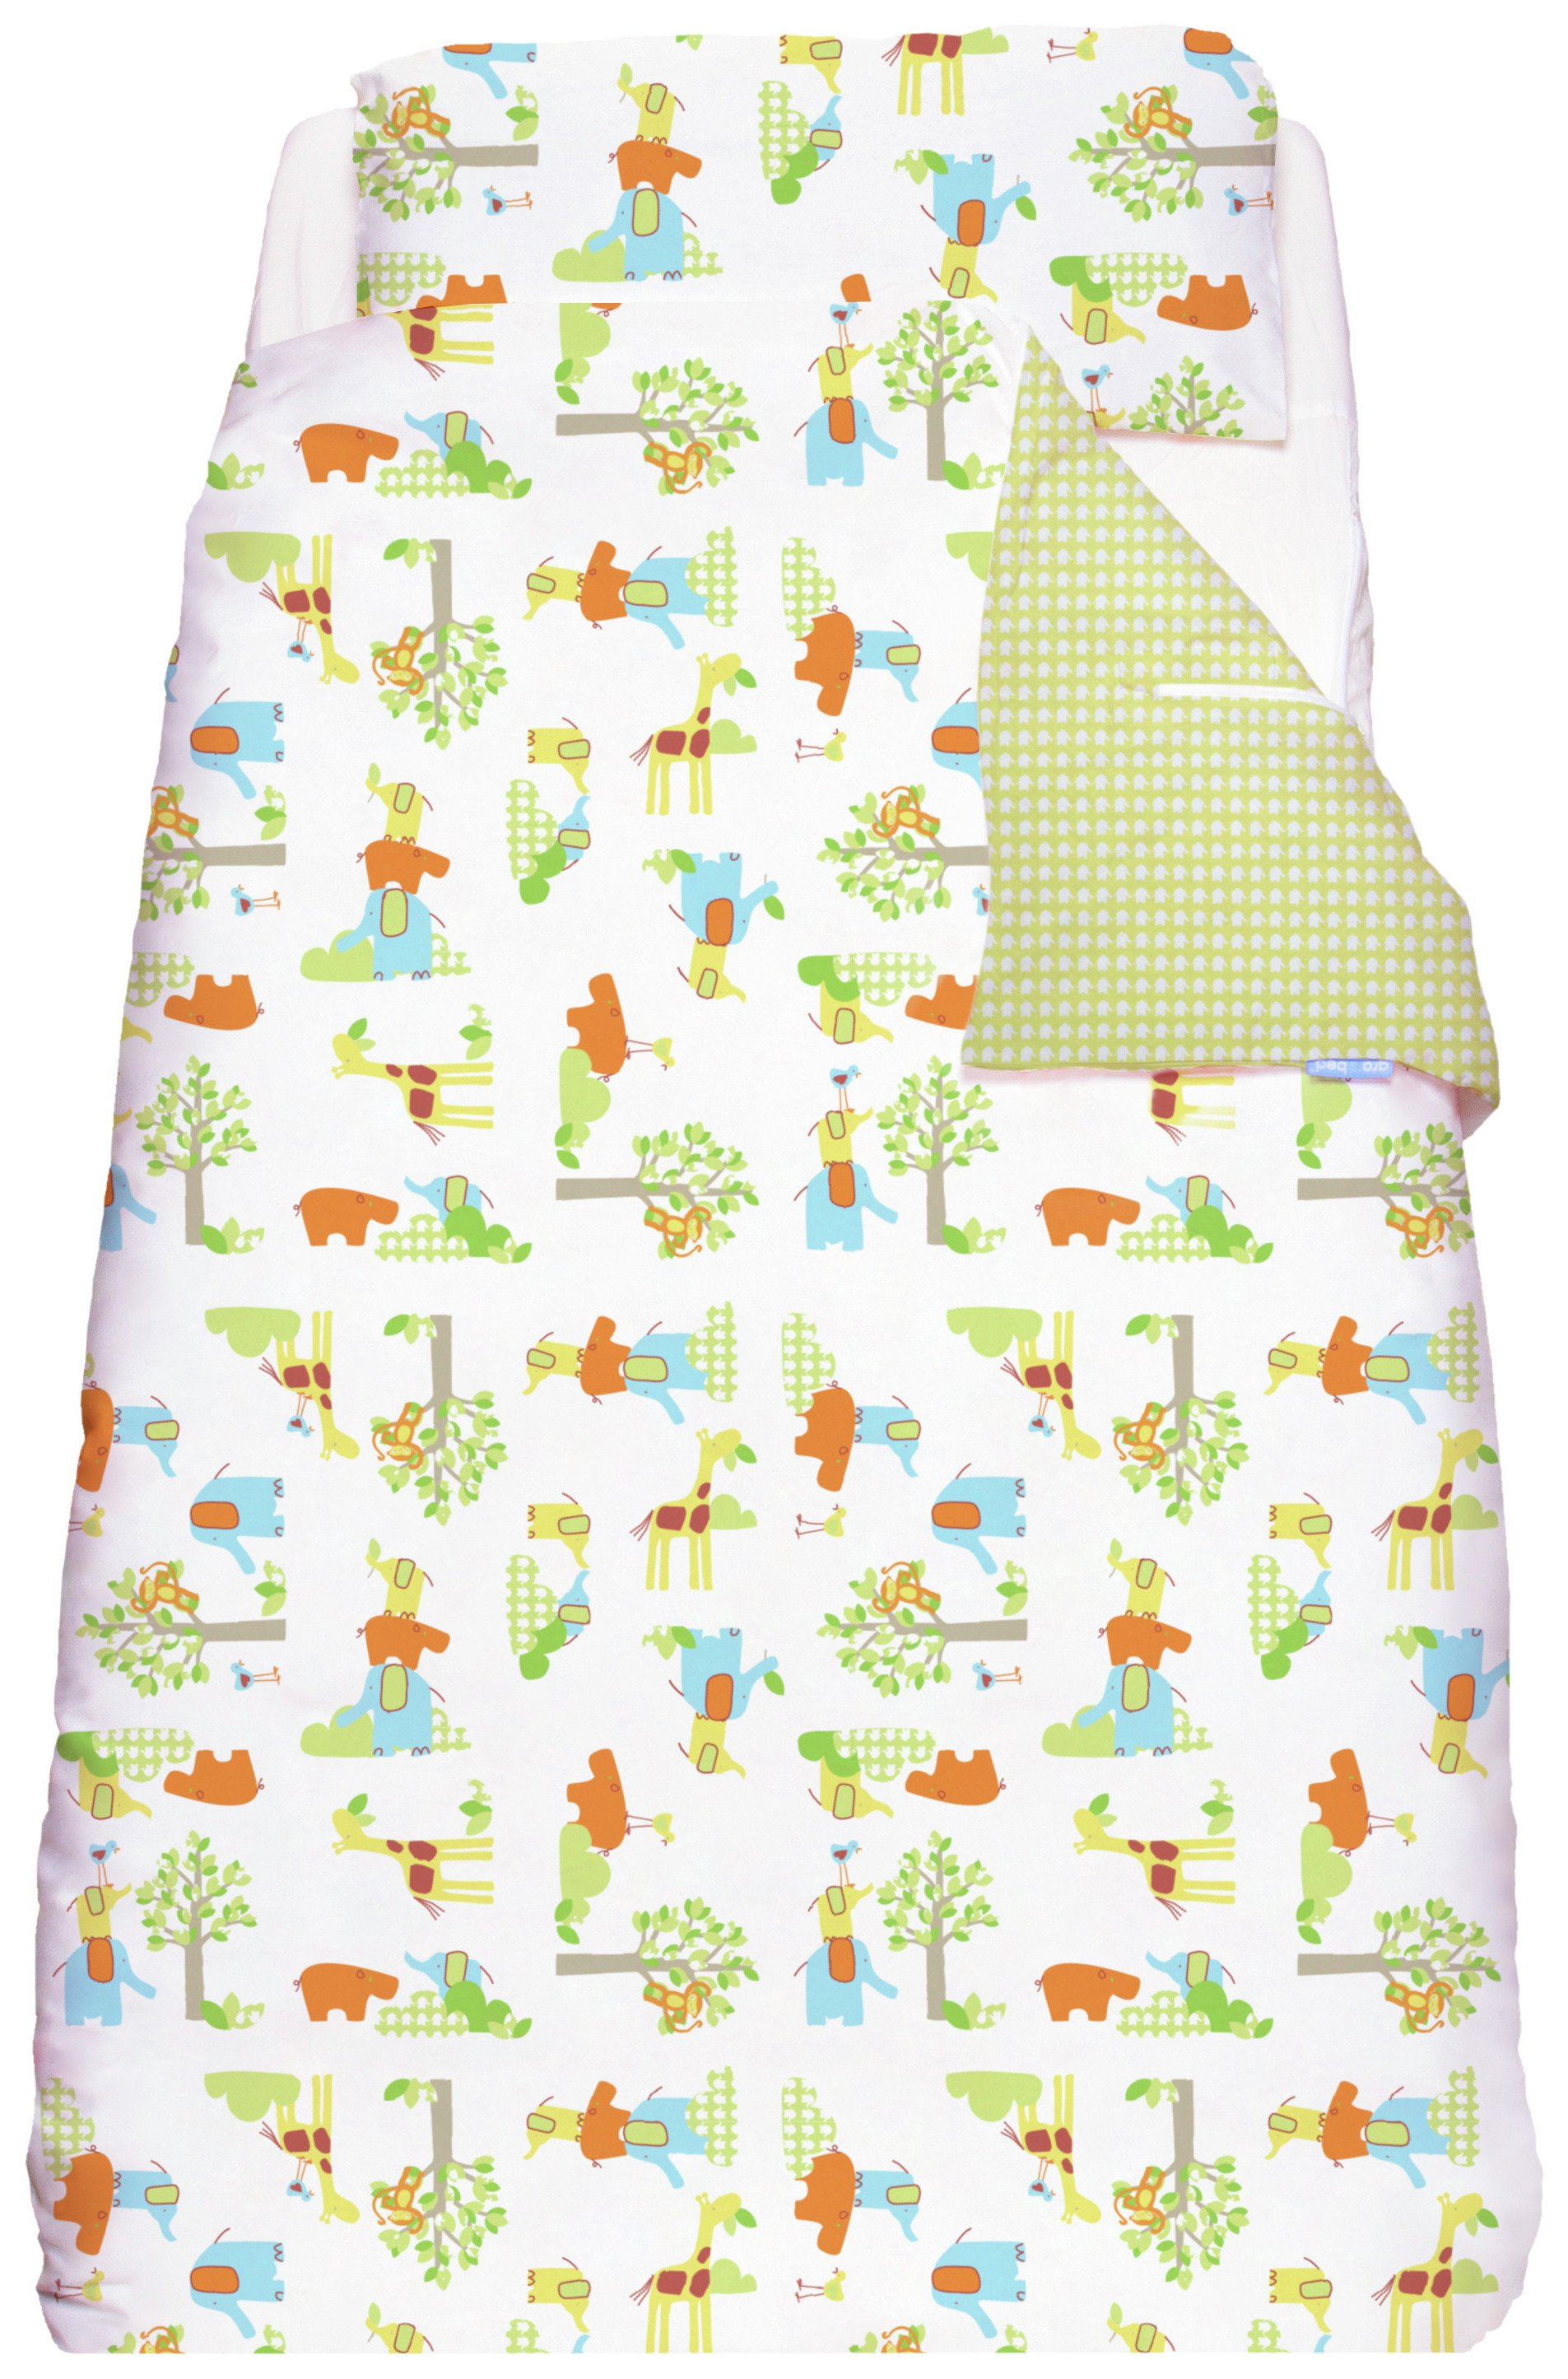 gro  to  bed  jolly jungle  cot  bedding